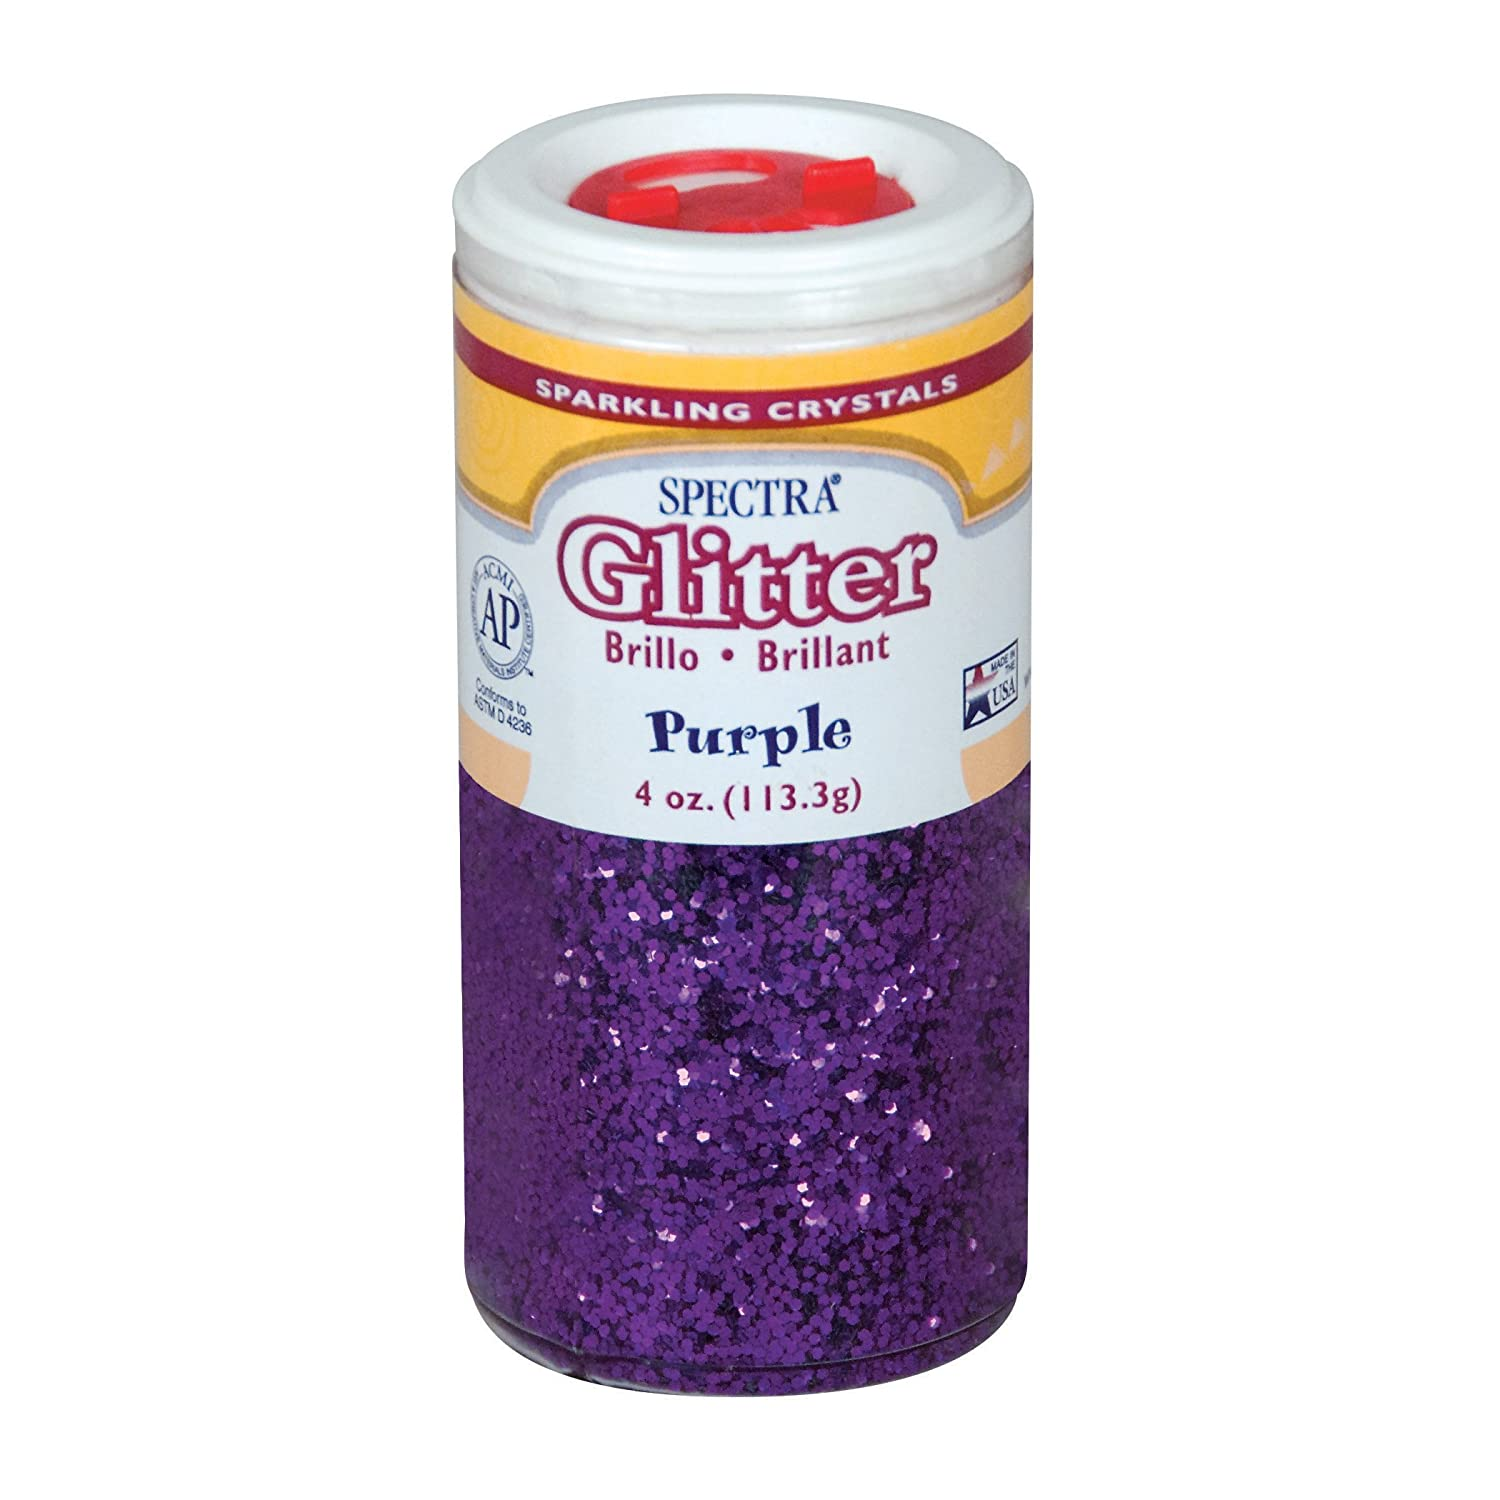 Pacon Spectra Glitter Sparkling Crystals, Purple, 4-Ounce Jar (91630) Pacon Corp.